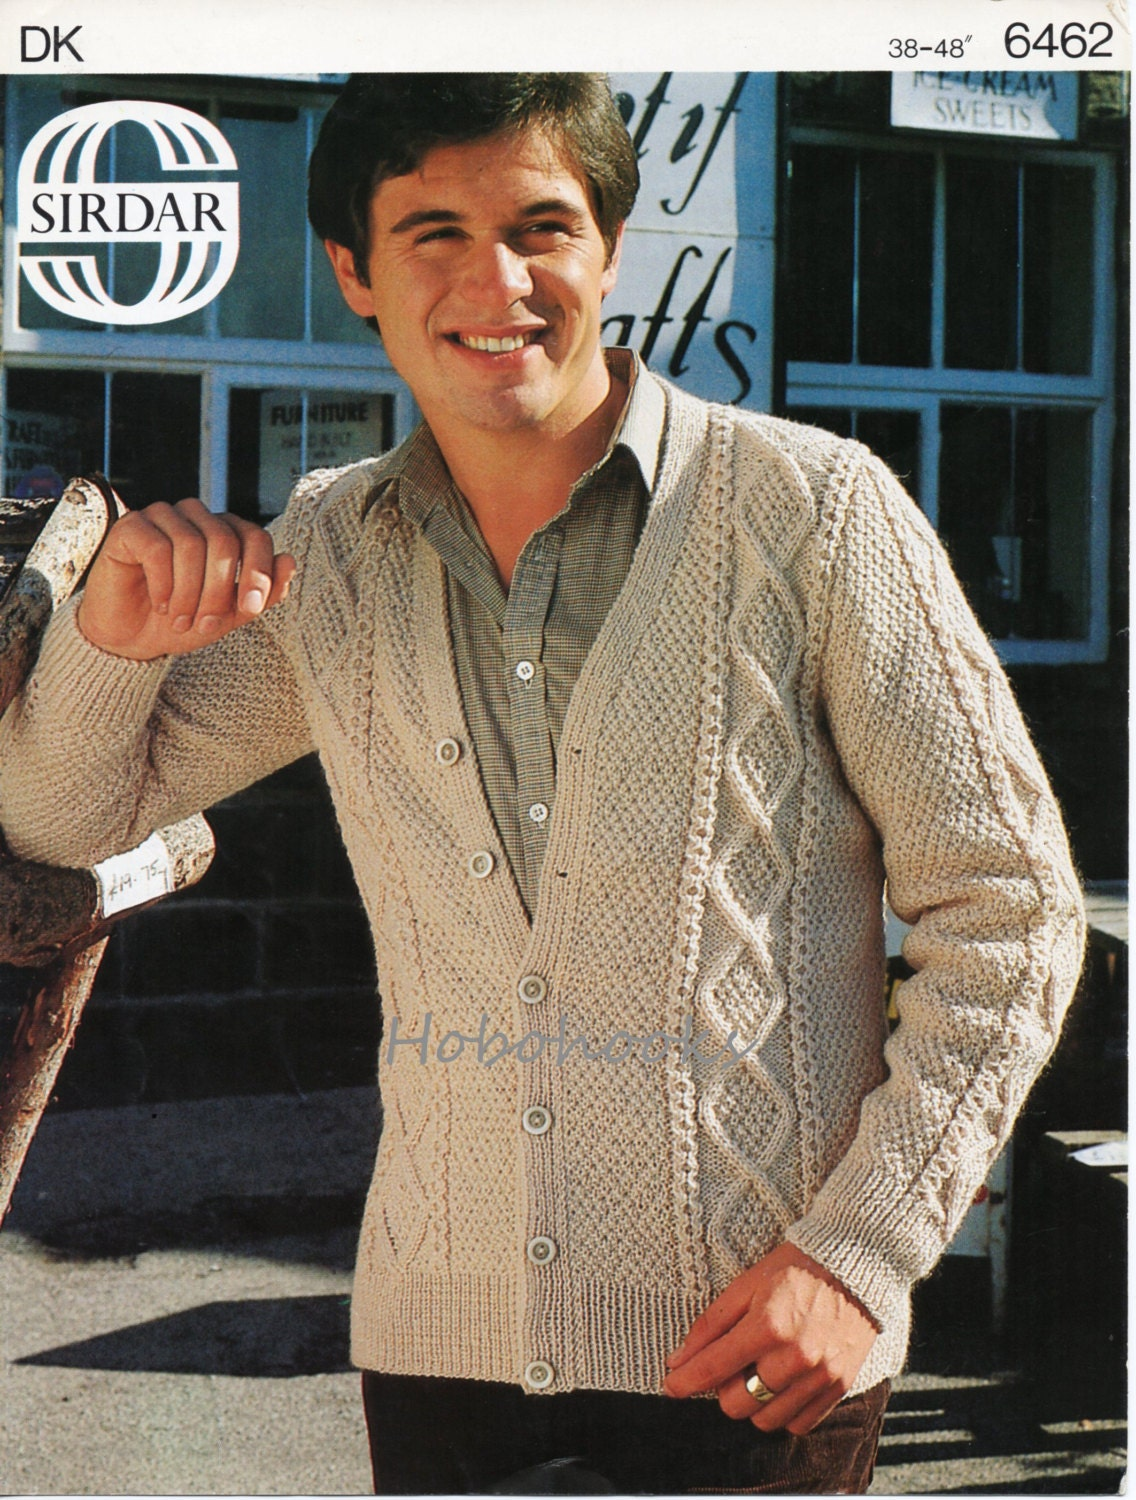 Mens Cardigan Knitting Patterns : mens aran cardigan knitting pattern cable jacket 38-48inch DK